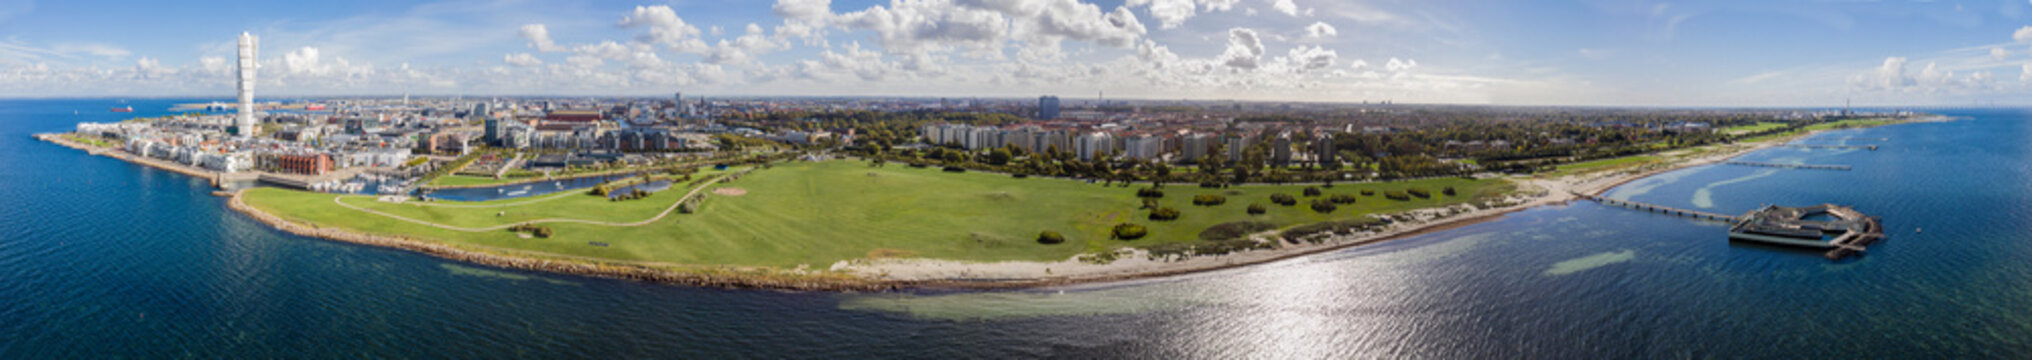 Drone view on Malmö, Sweden